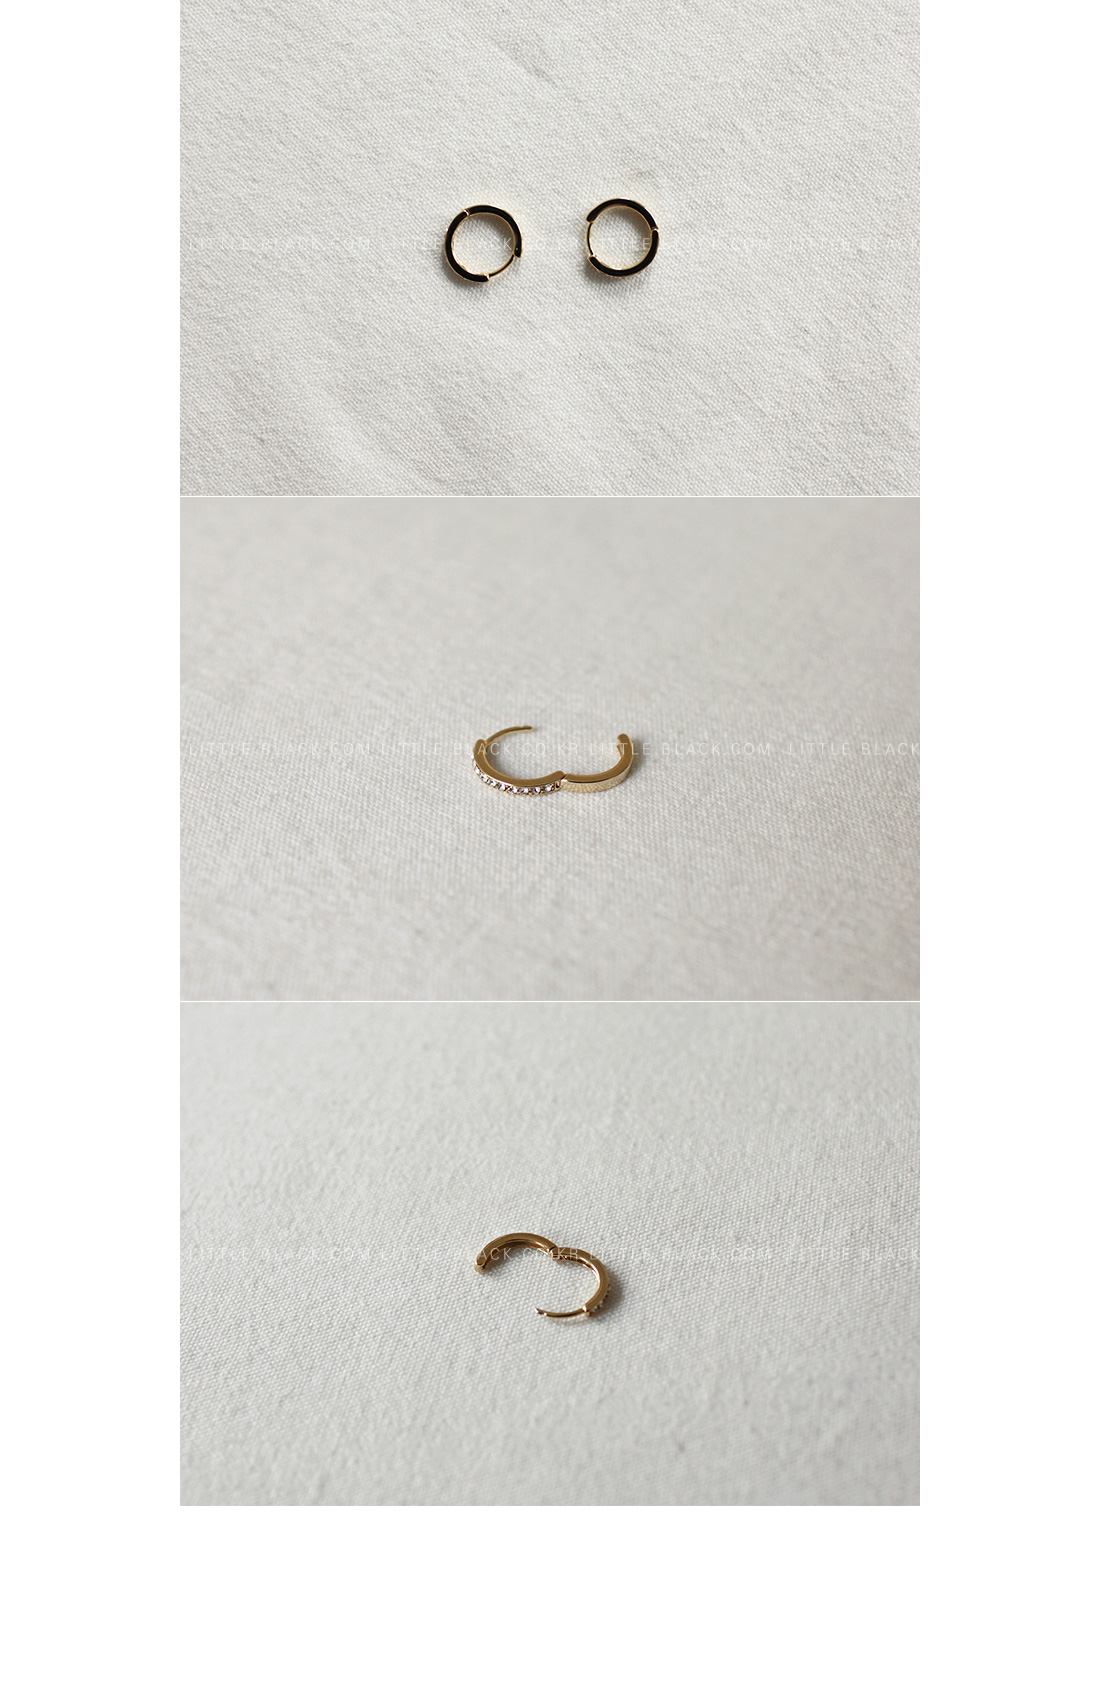 Rhinestone Hoop Earrings|